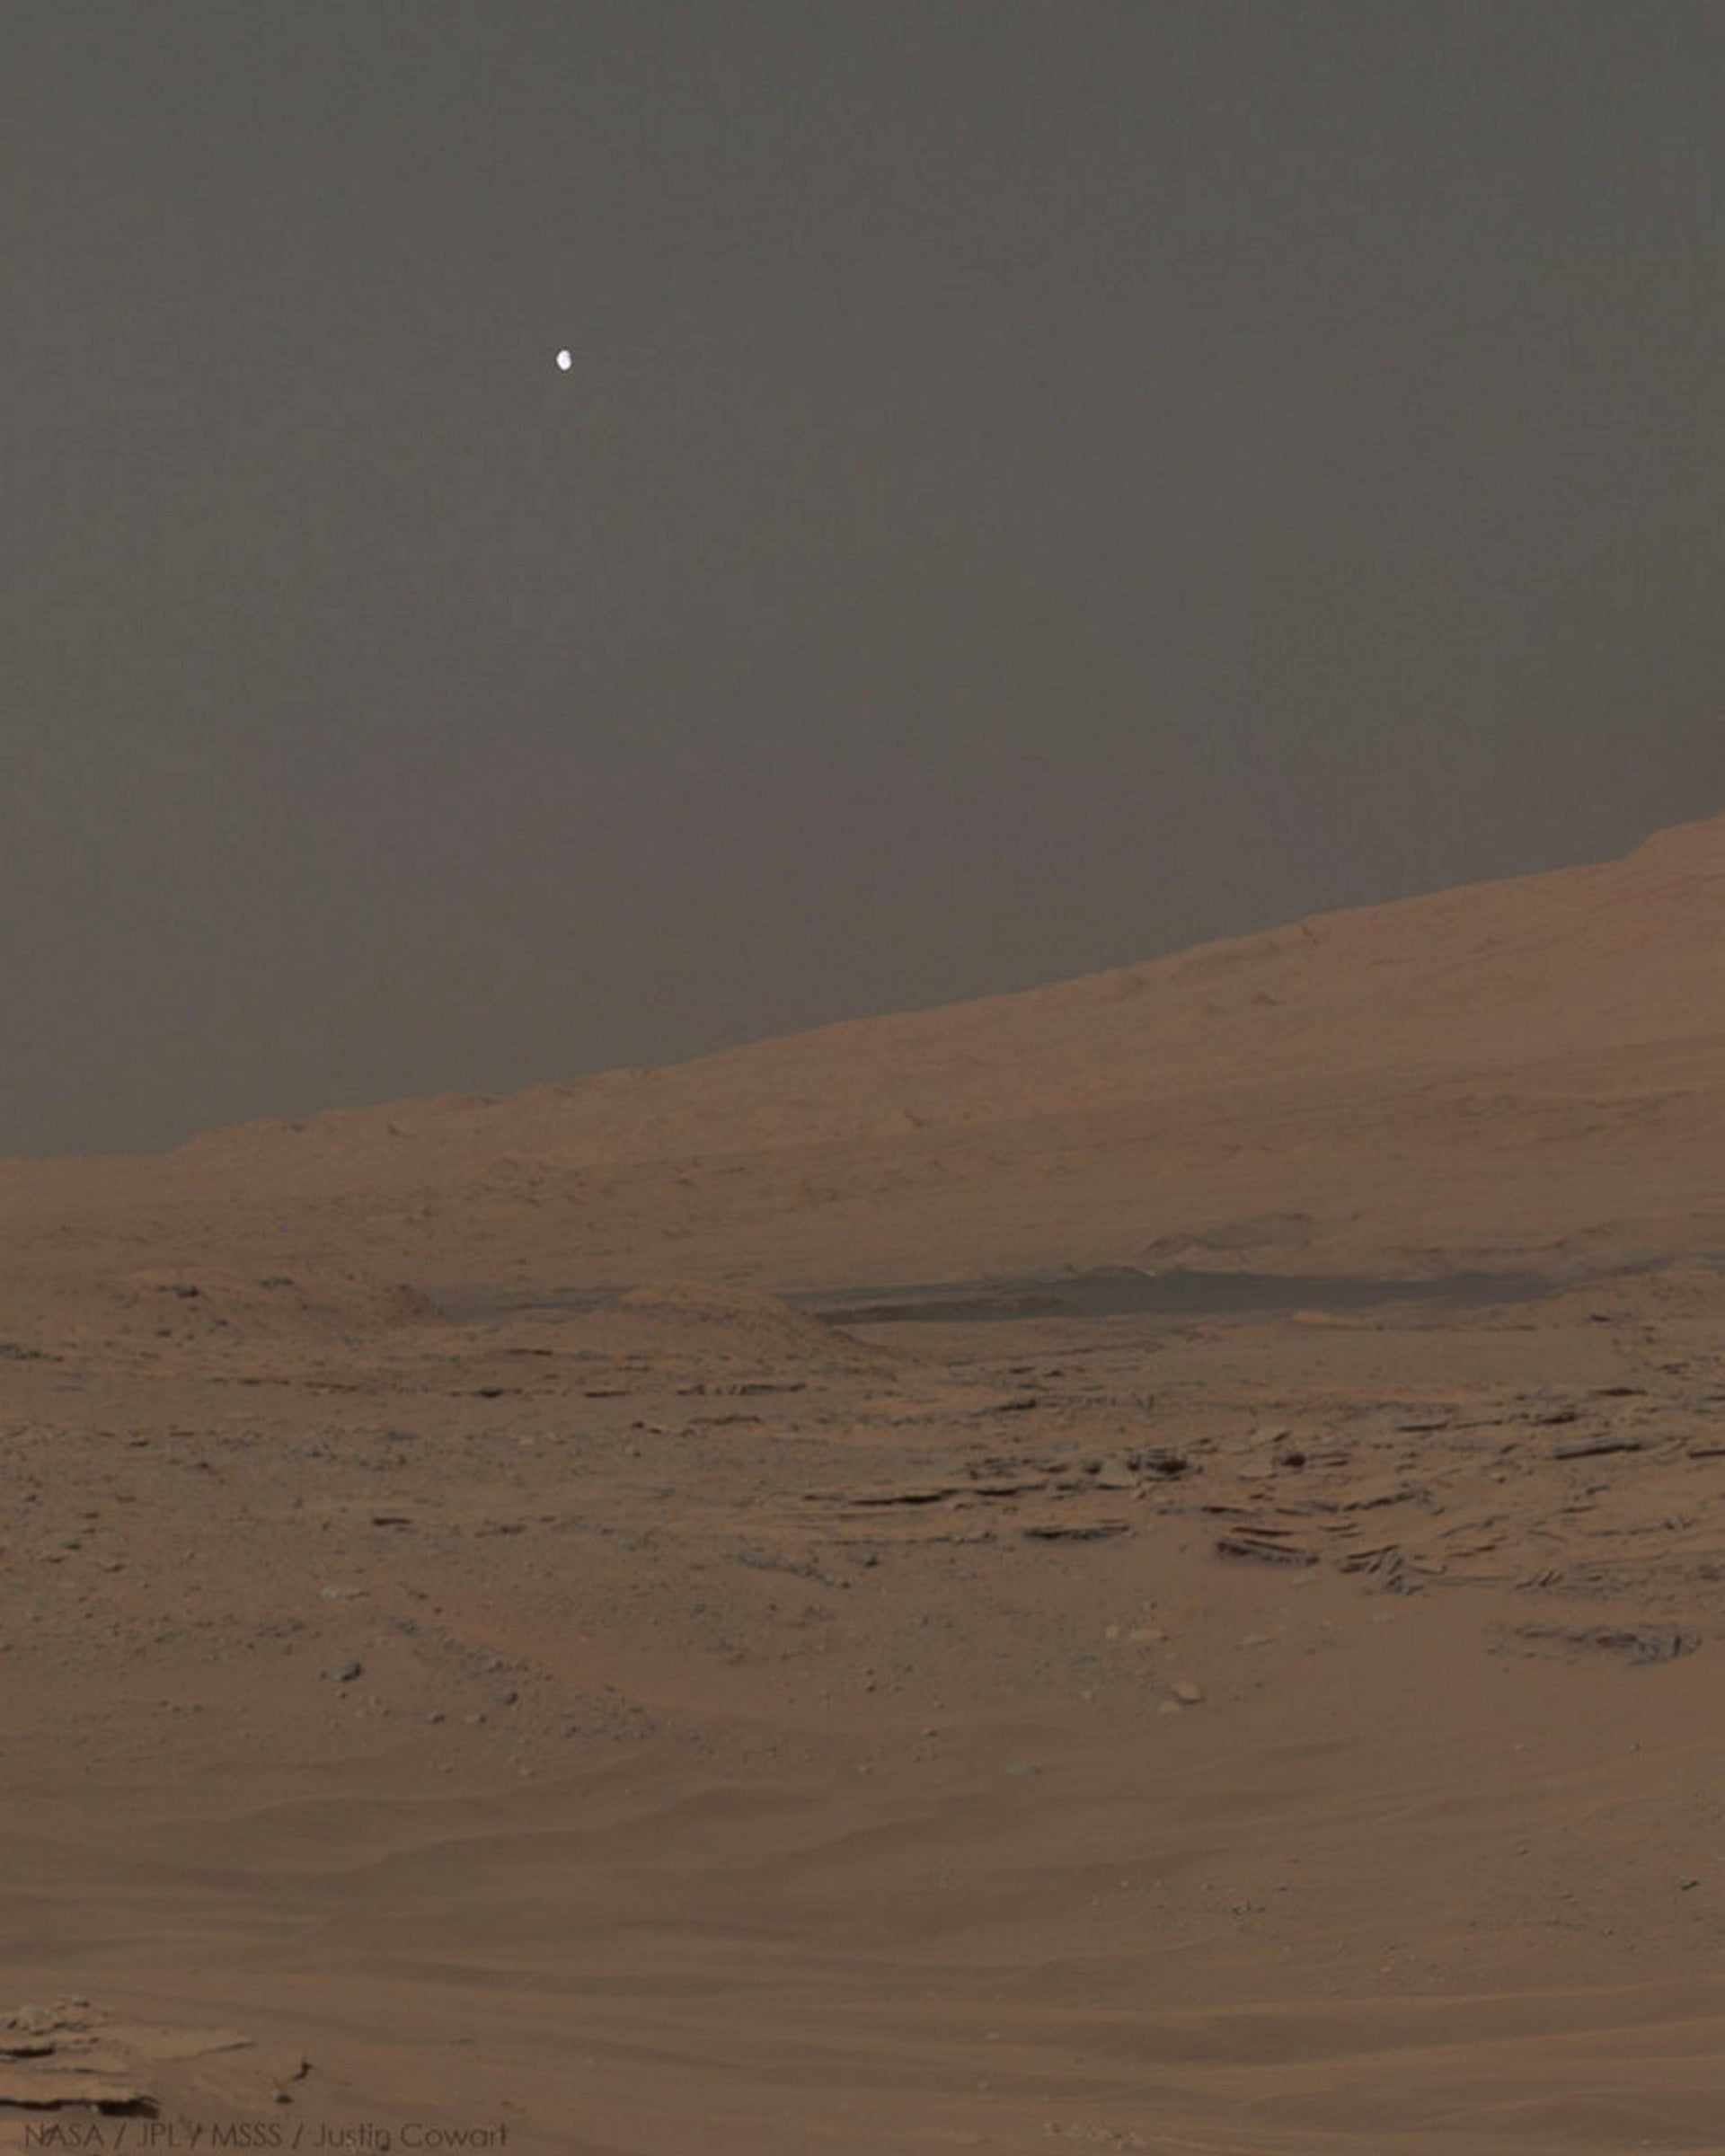 Phobos sets over Mt. Sharp, Mars, in a mosaic of three images captured by the Curiosity rover in 2014.